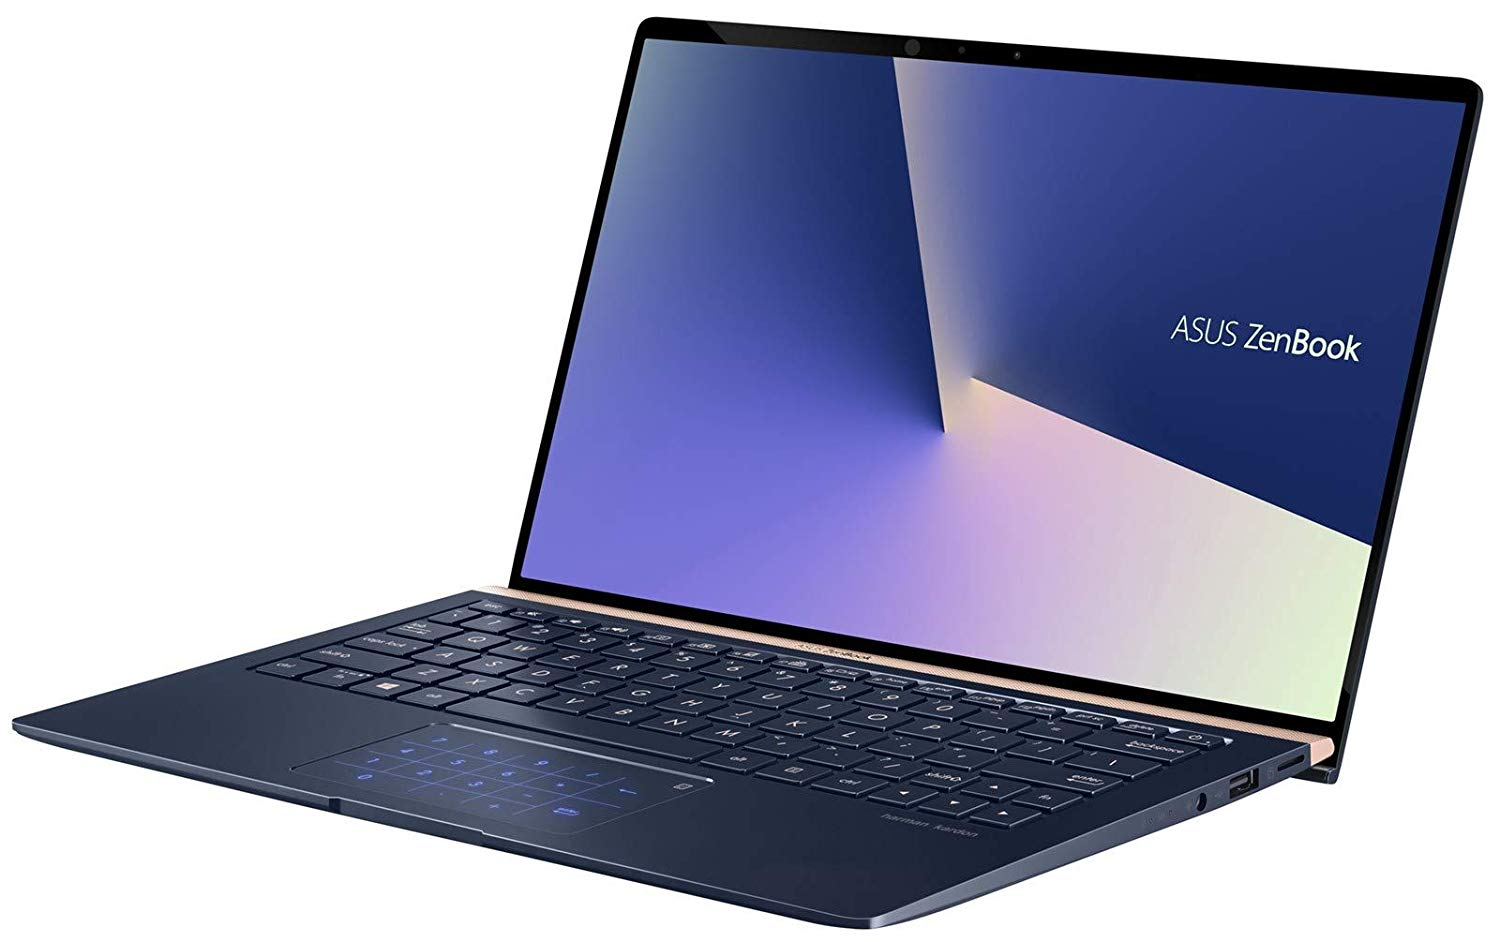 Ultrabook Asus ZenBook UX433FA 14 Full HD Intel Core i5-8265U RAM 8GB SSD 256GB Windows 10 Pro Albastru